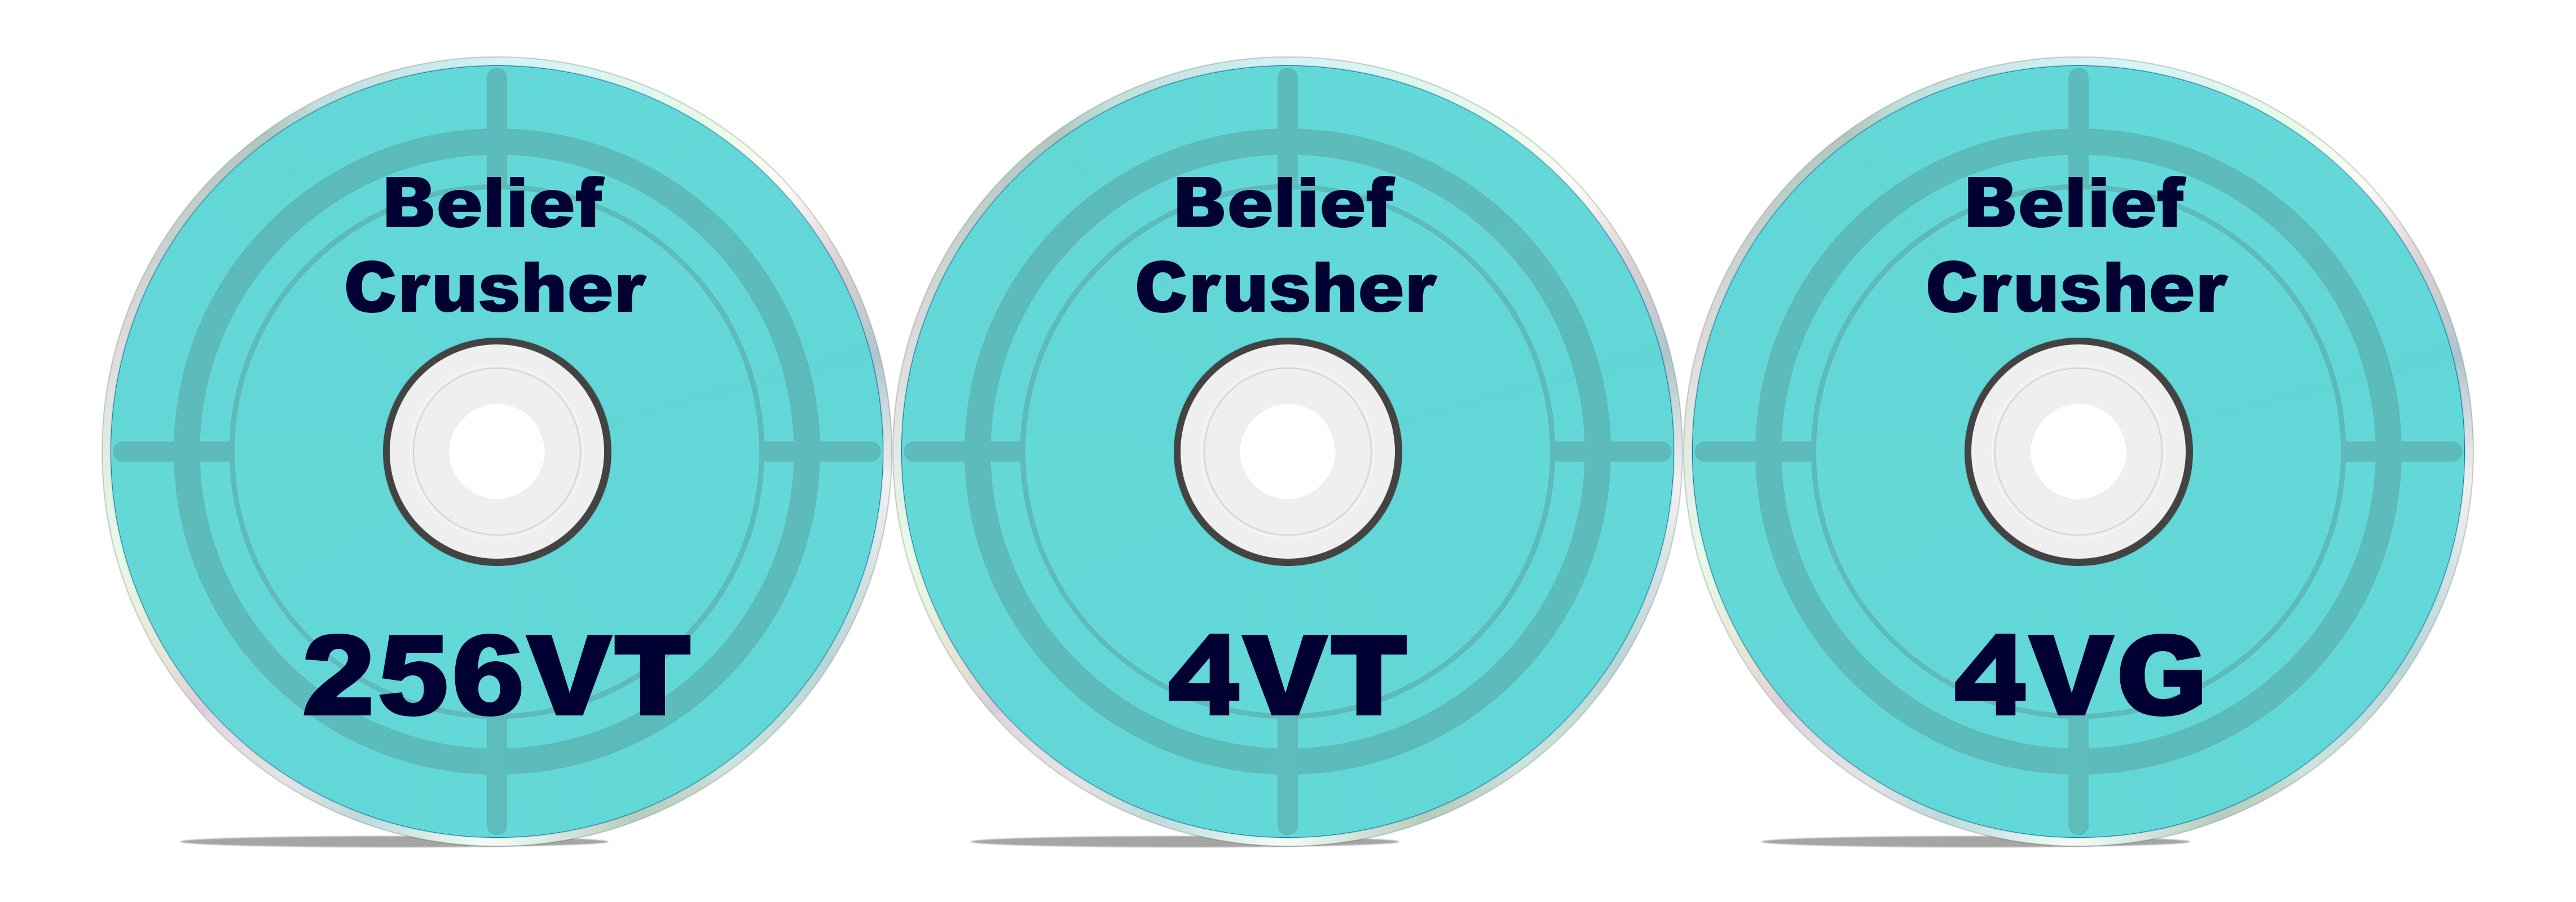 Belief Crusher